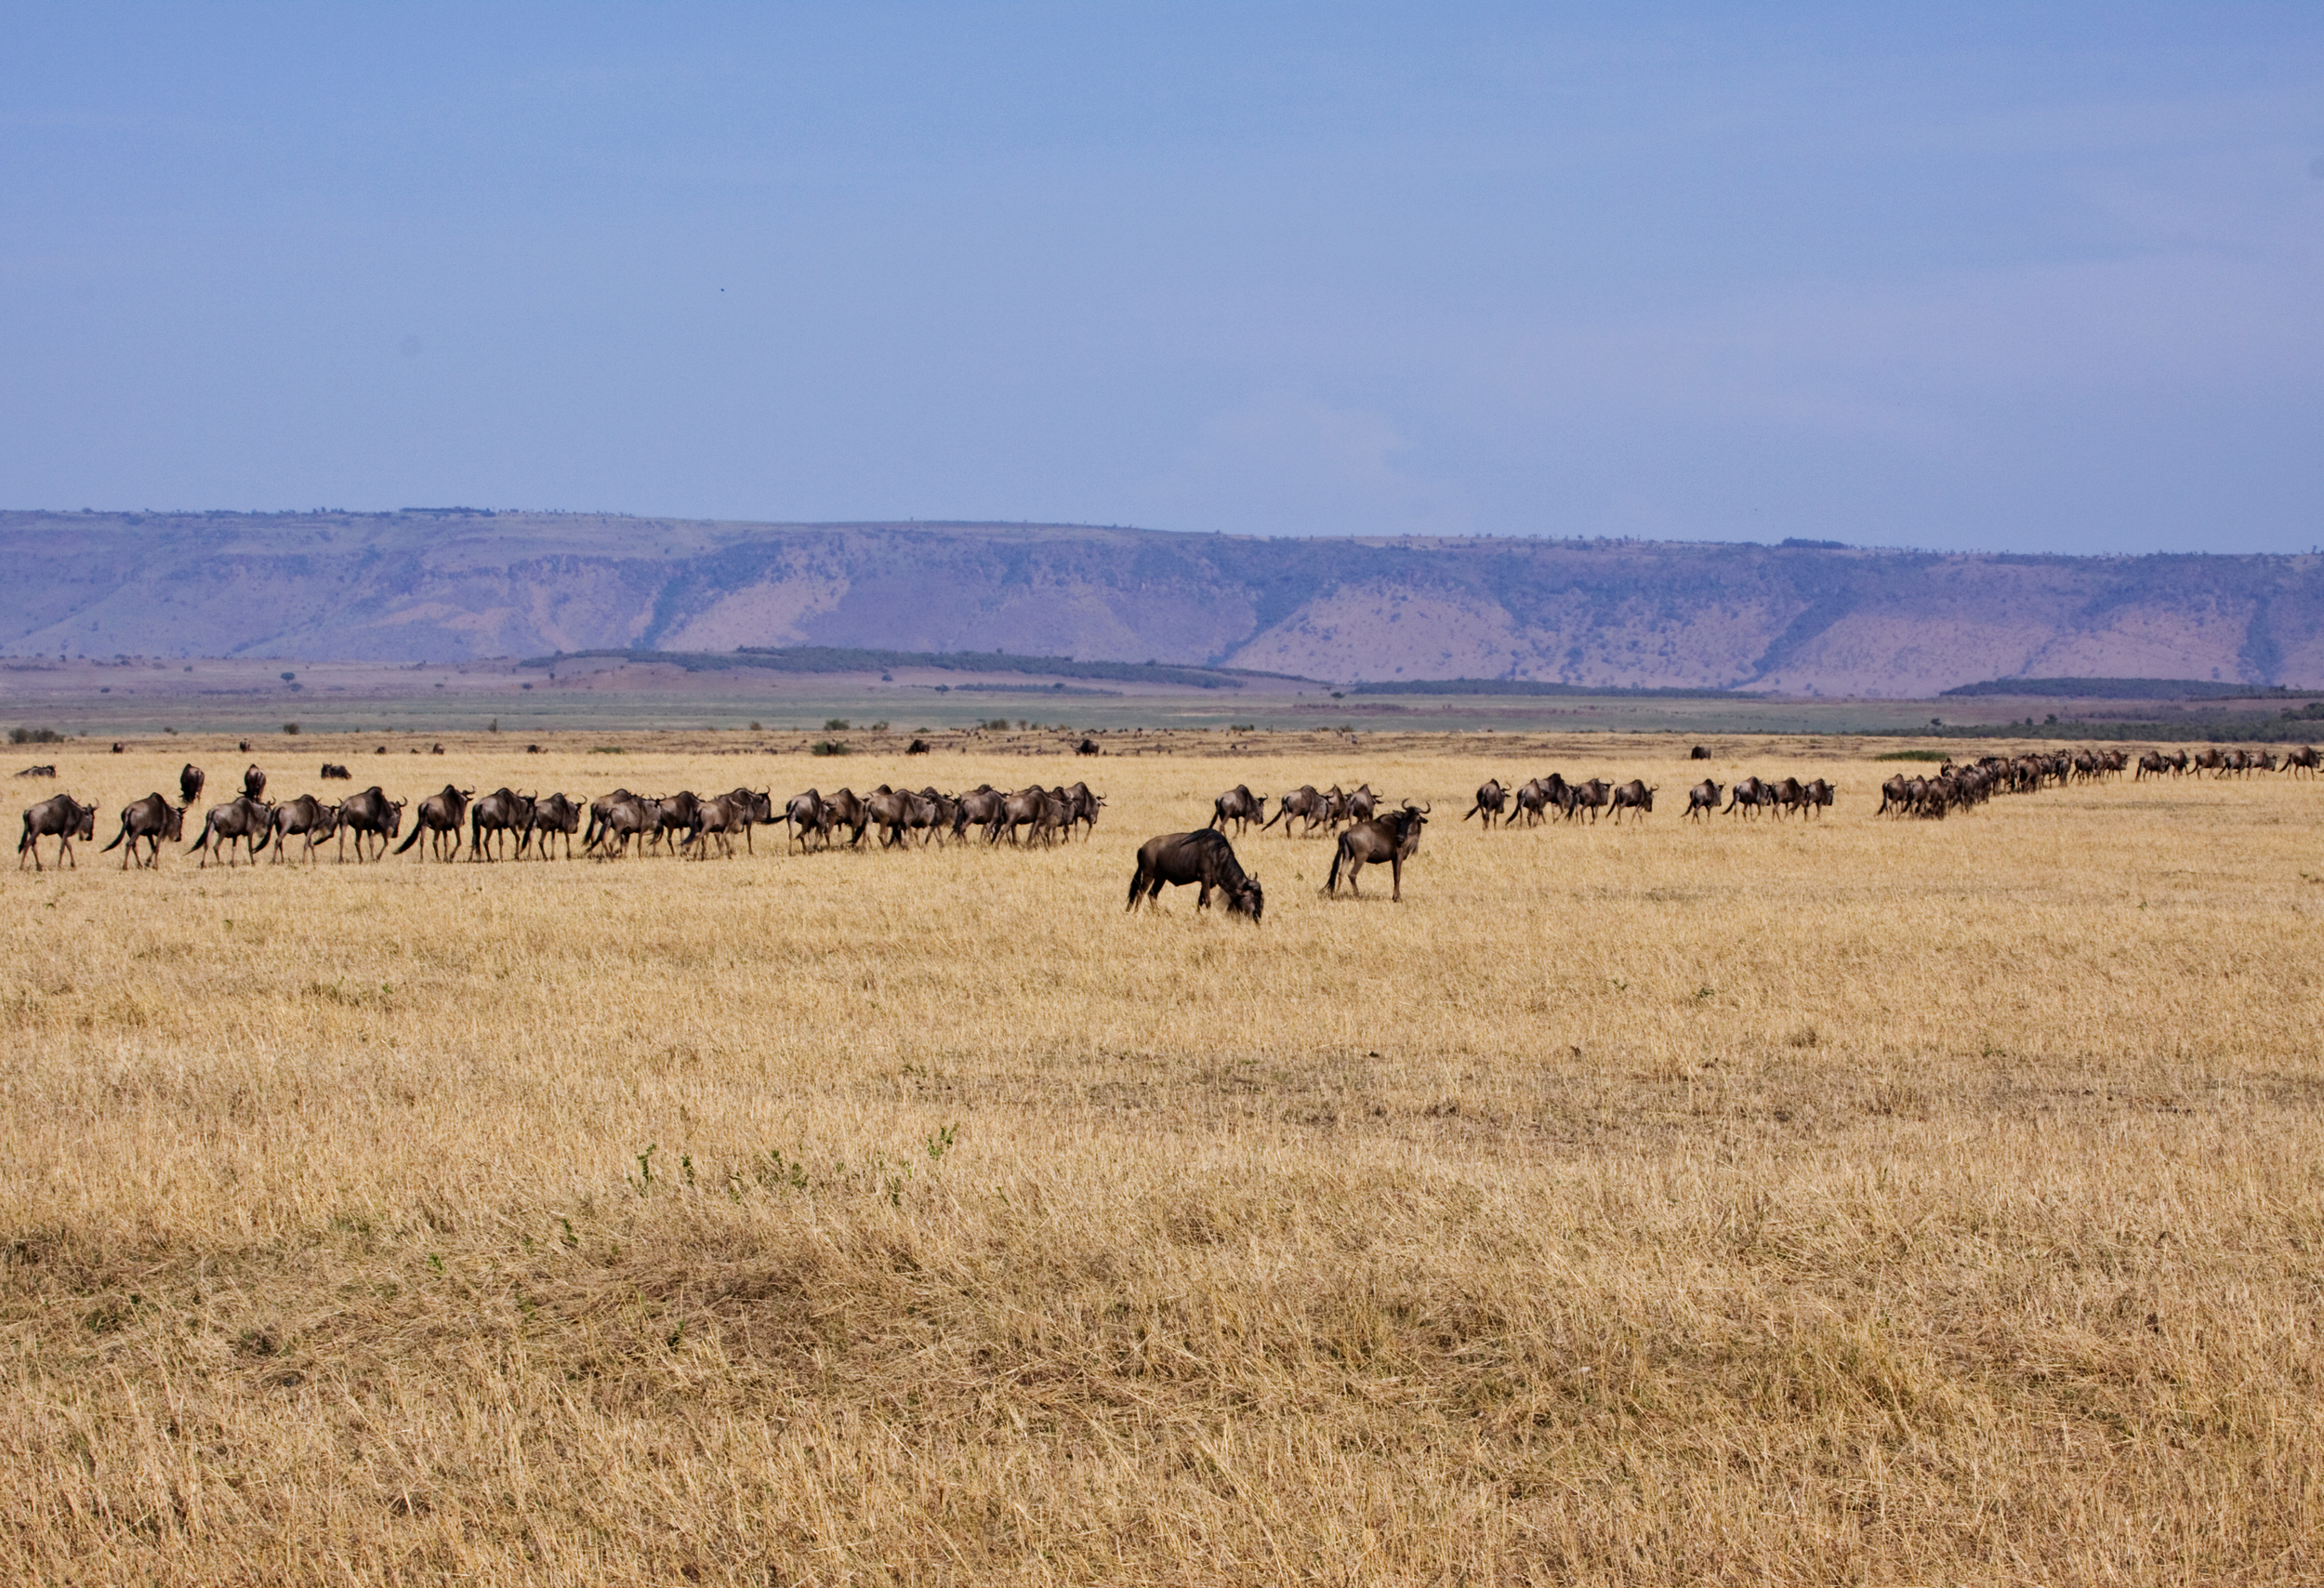 Migration of the Wildebeest from the Masai Mara to the Serengeti Plain in Tanzania